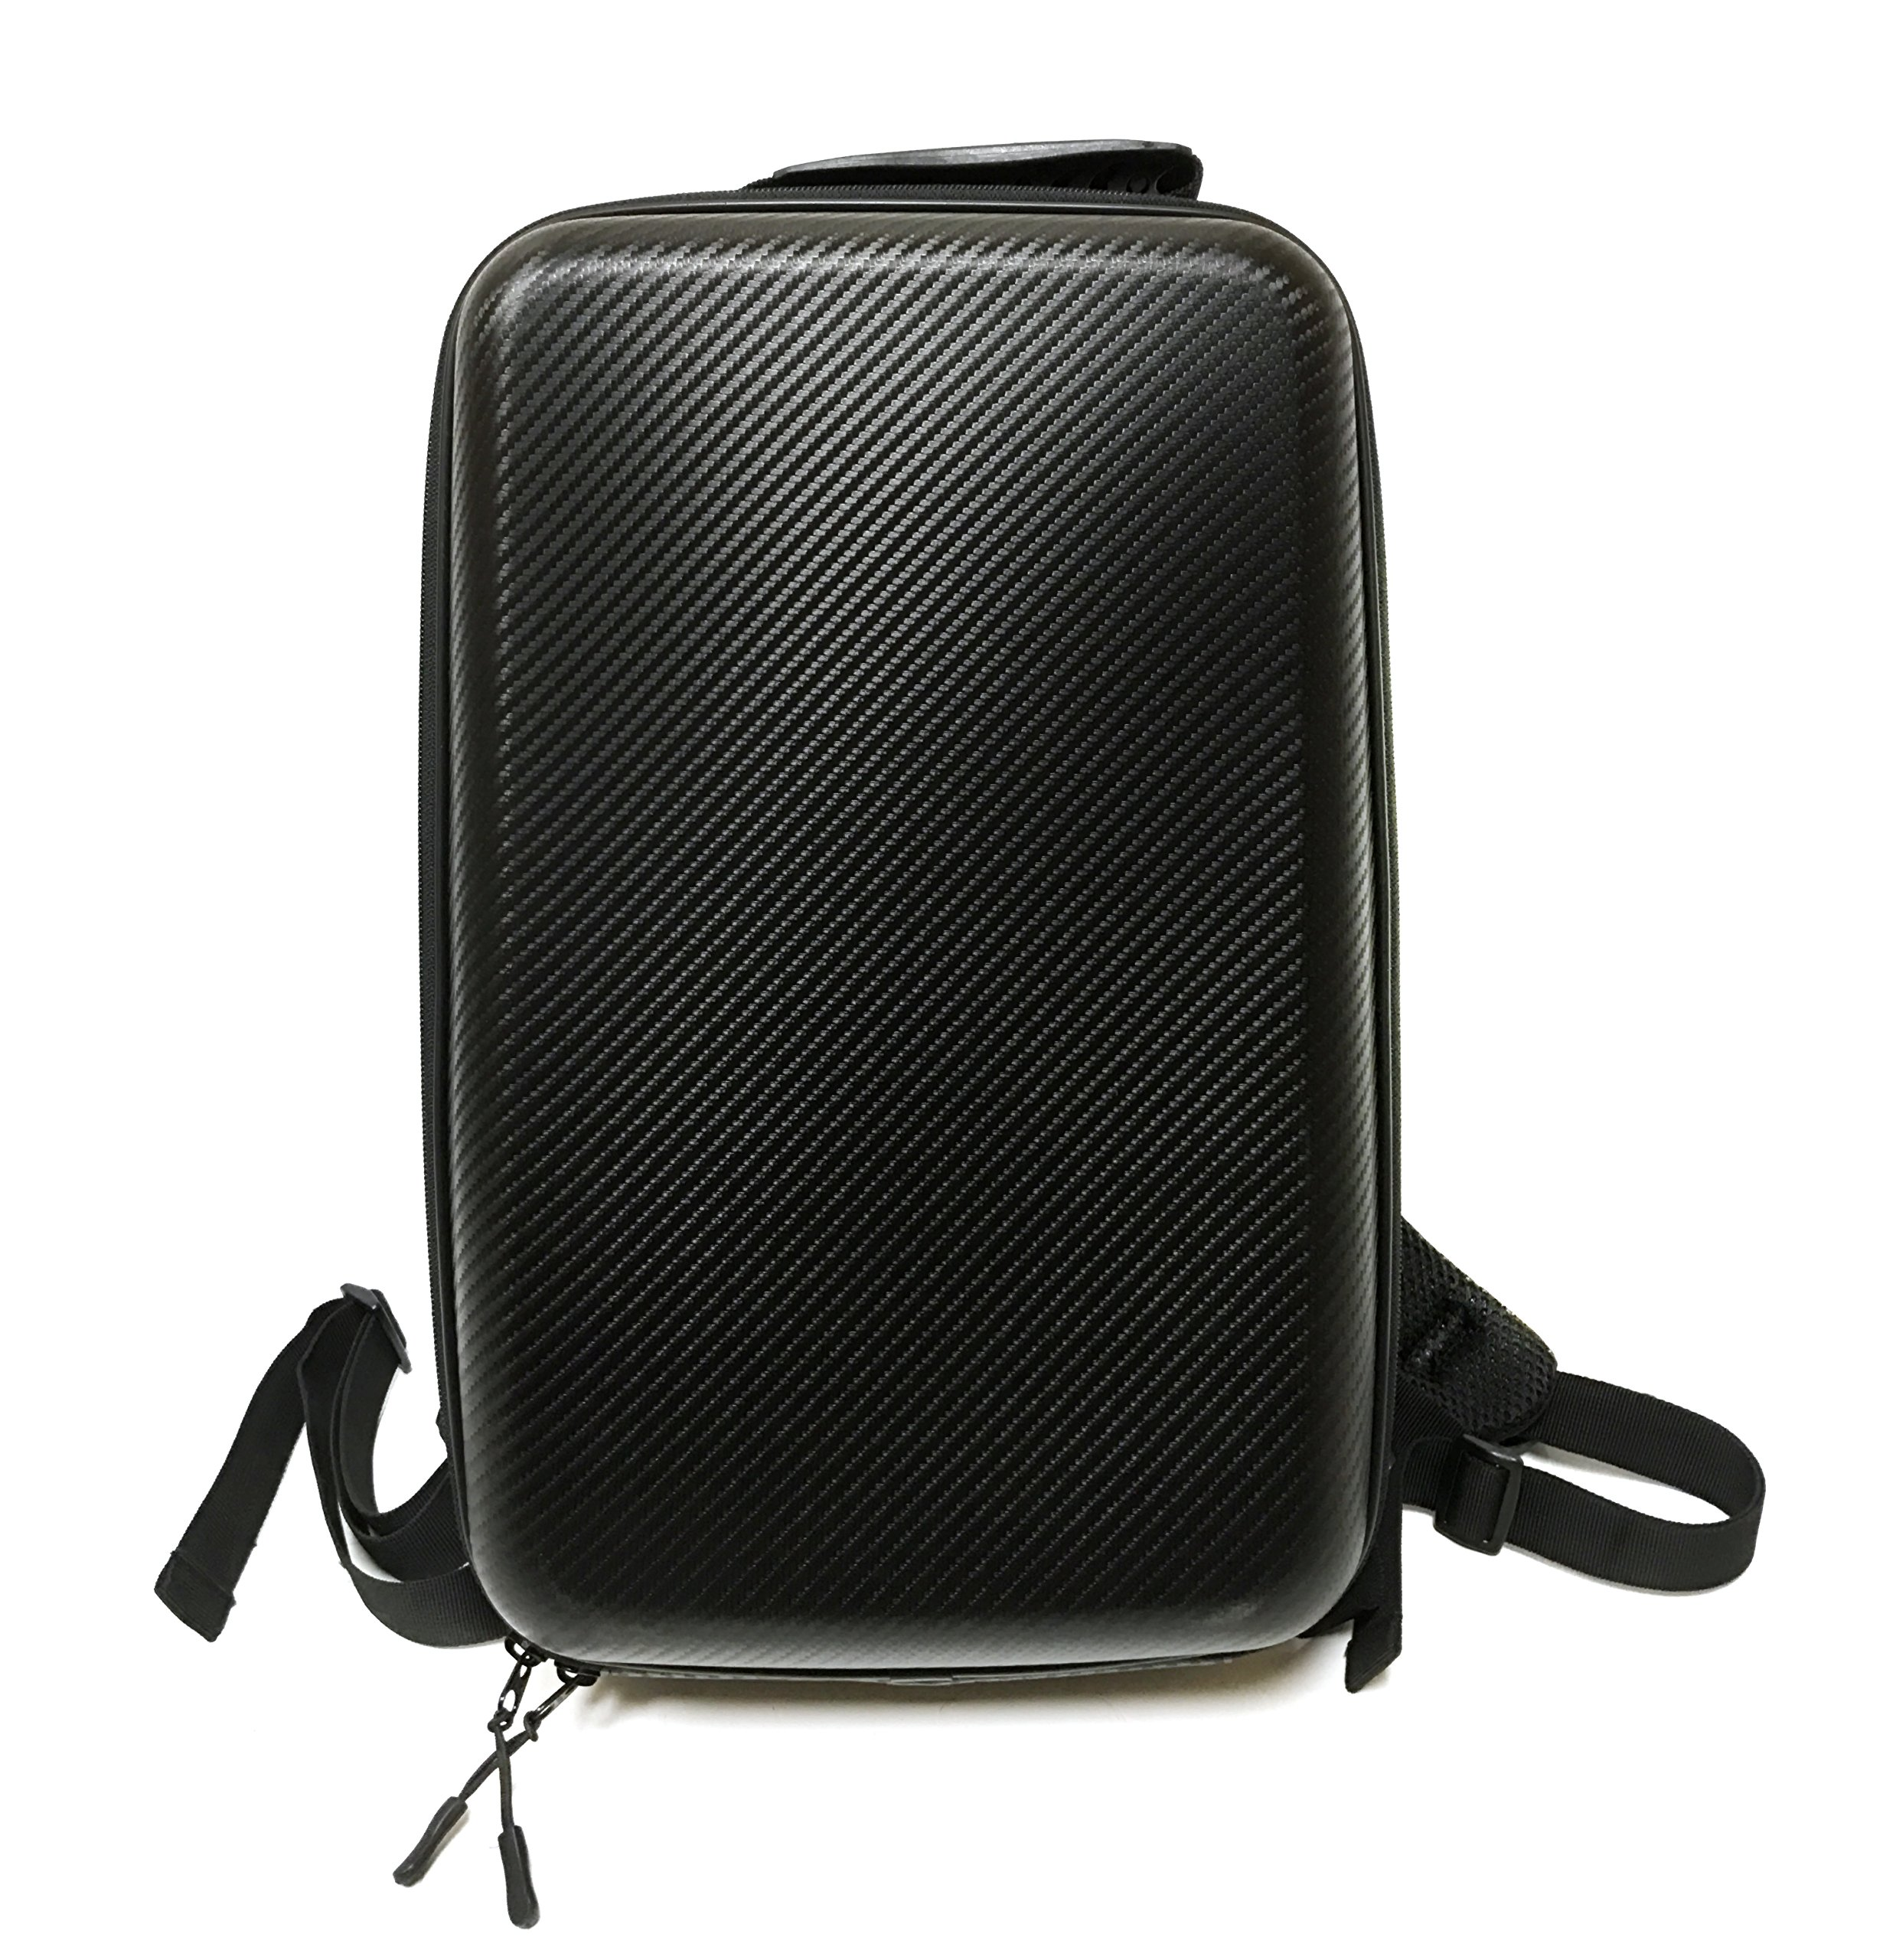 Backpack for DJI Mavic Pro - Lightweight, custom fit, and durable case